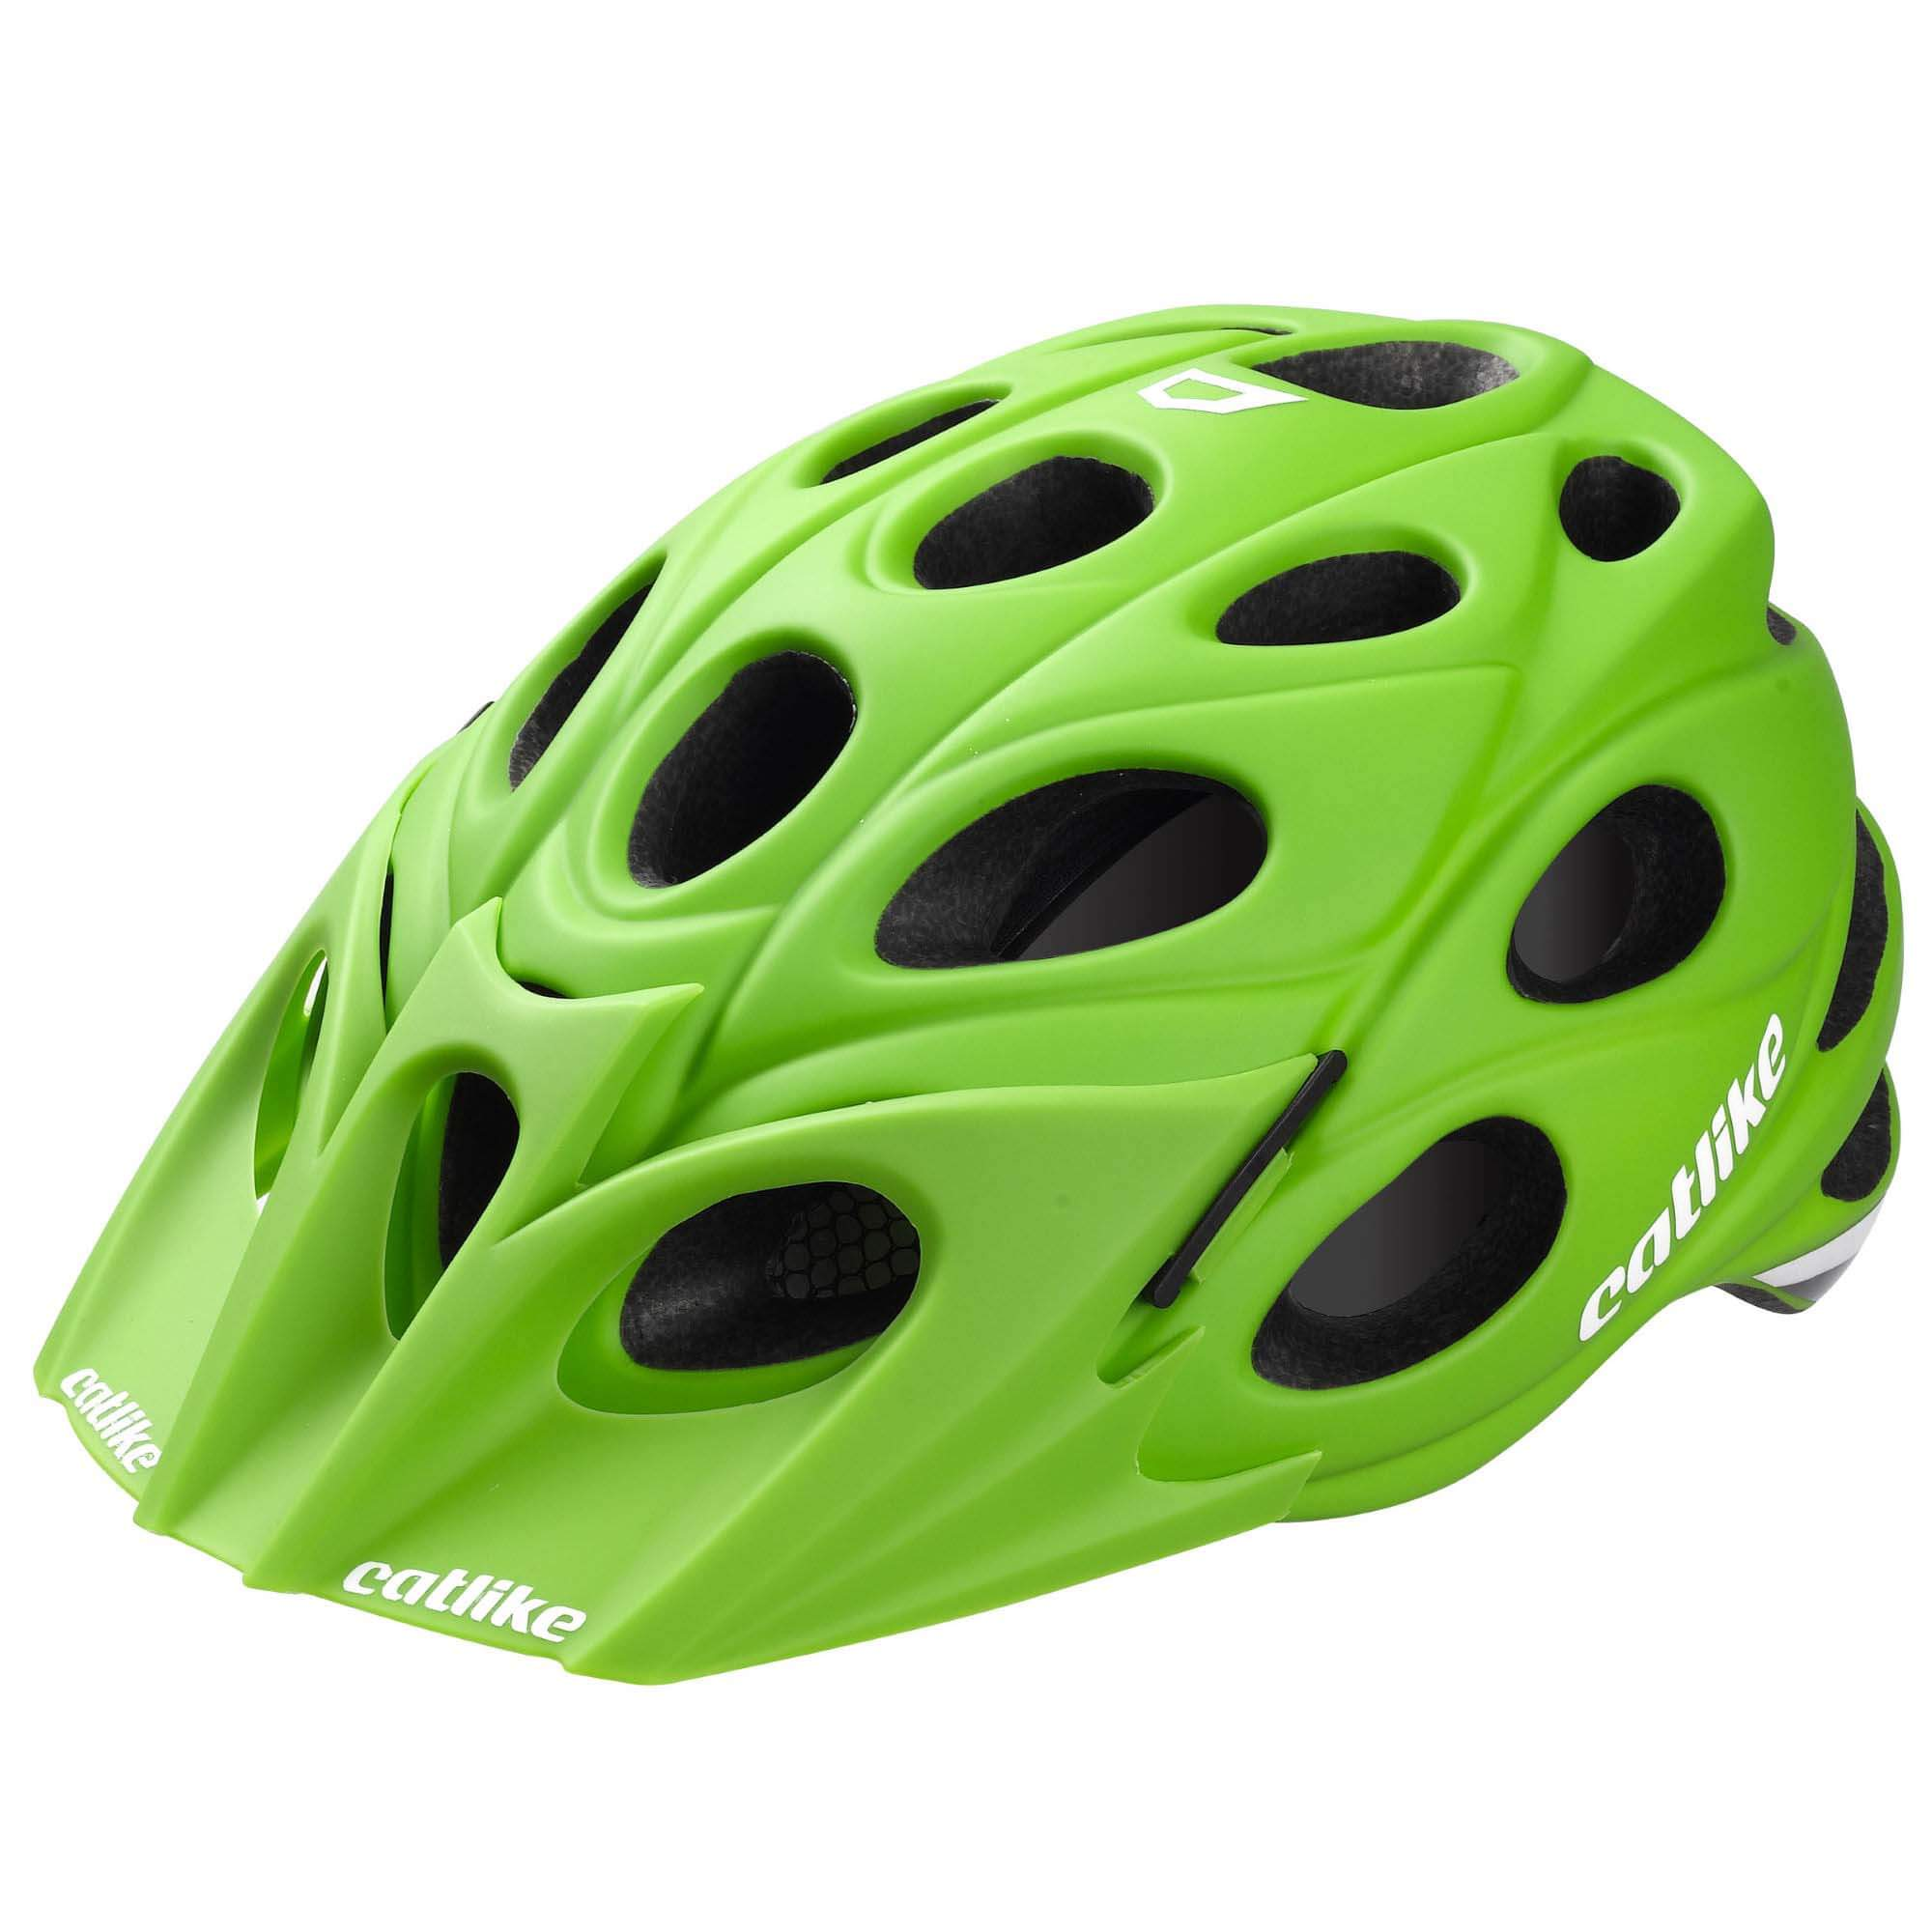 Bicycle Helmet - Adult